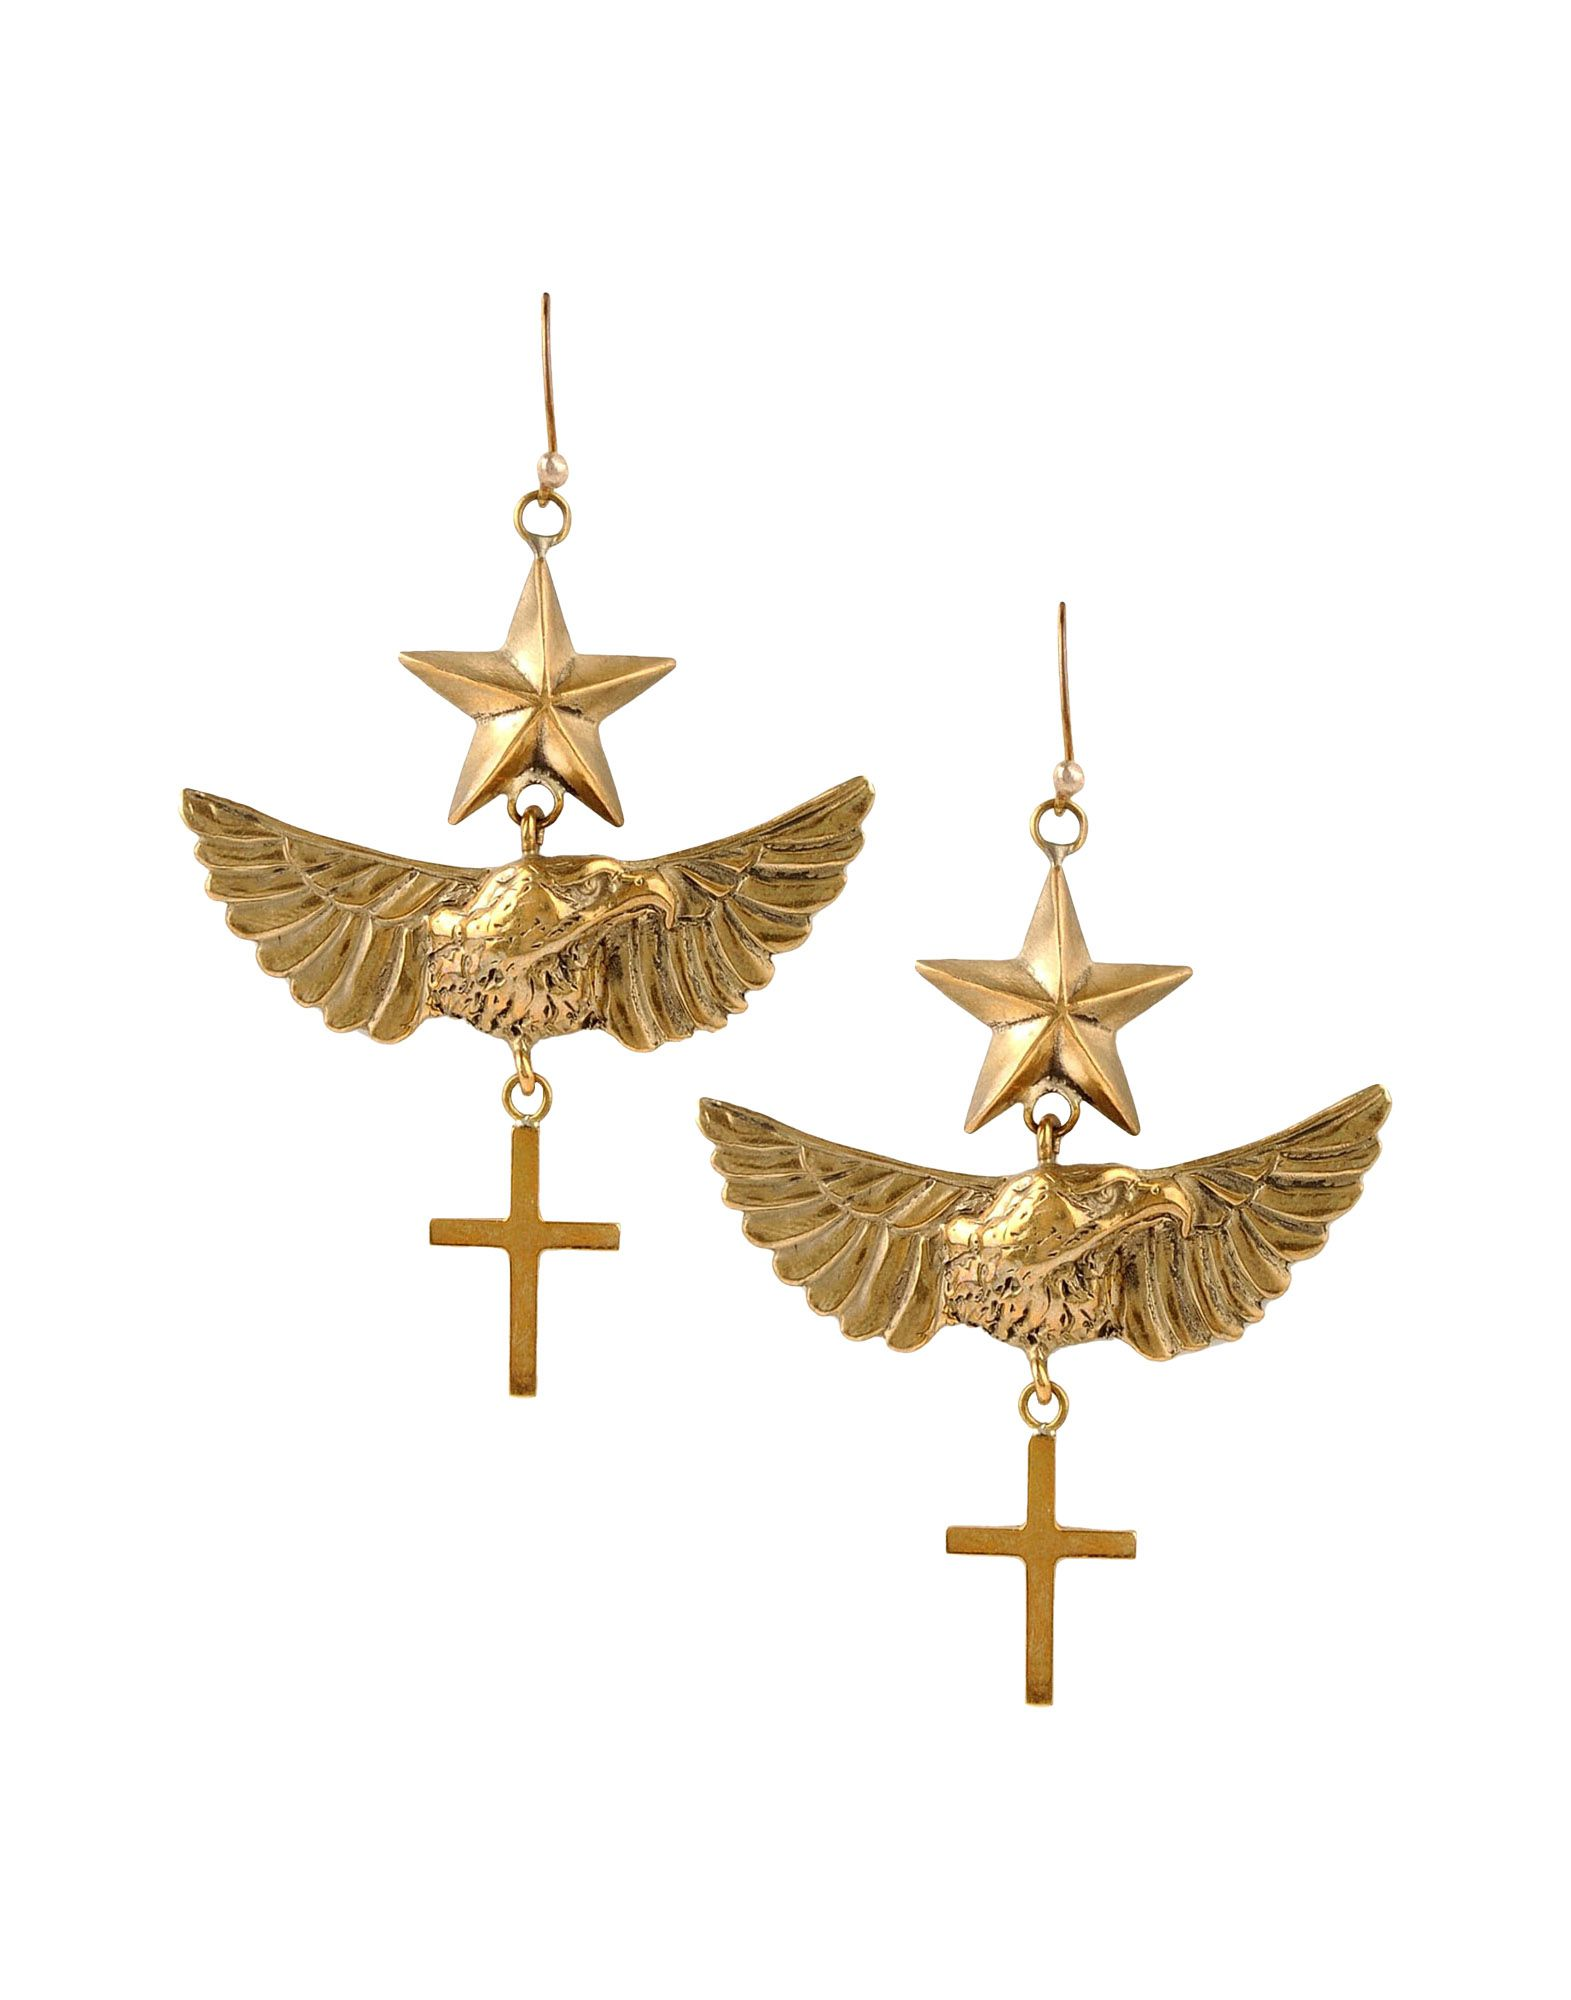 Emilio Pucci brass star cross and wing earrings